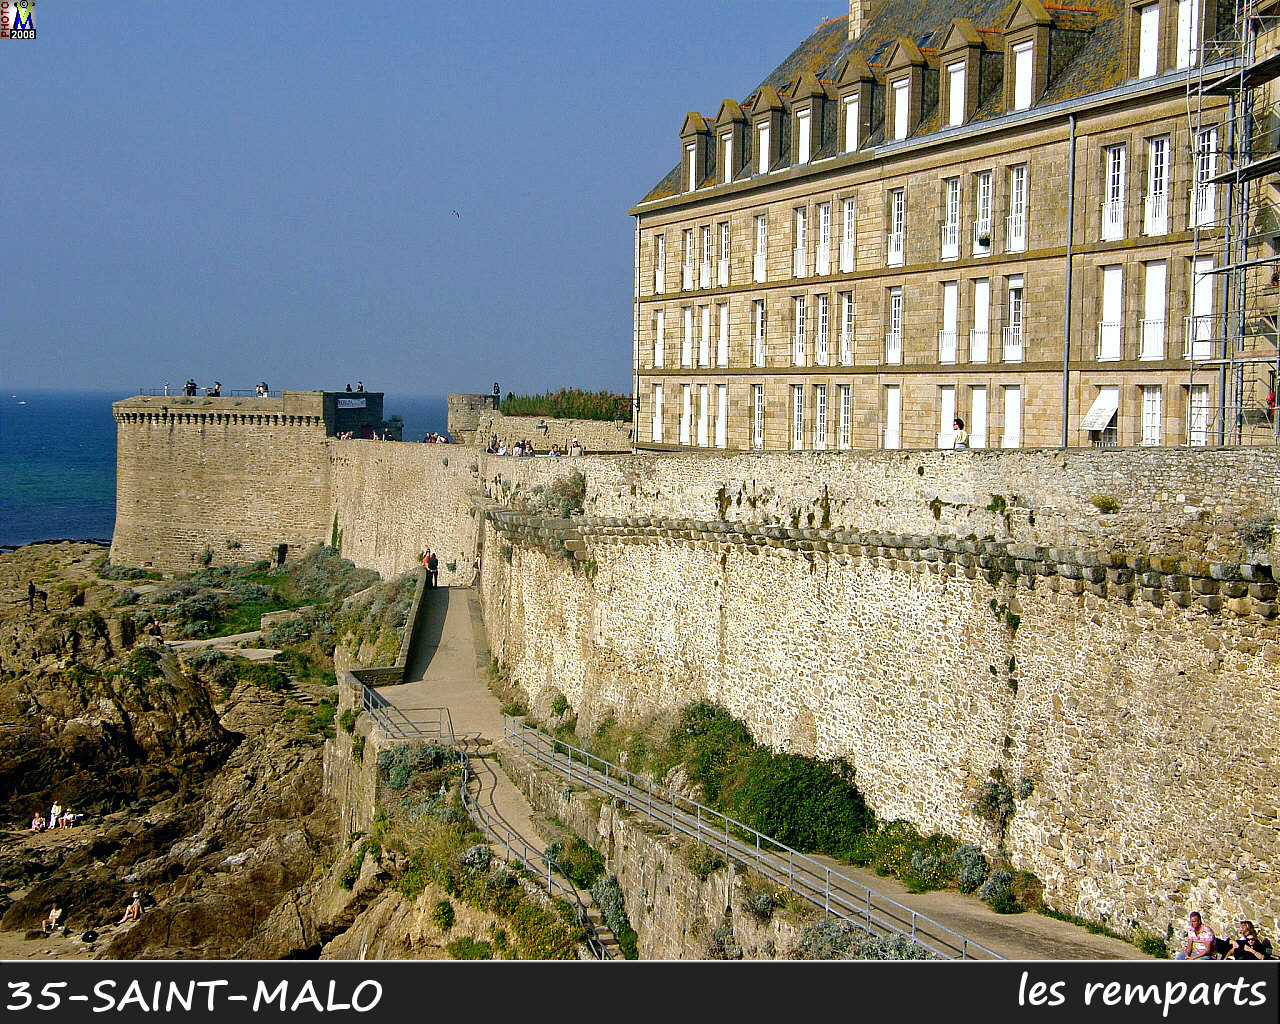 35StMALO_remparts_124.jpg